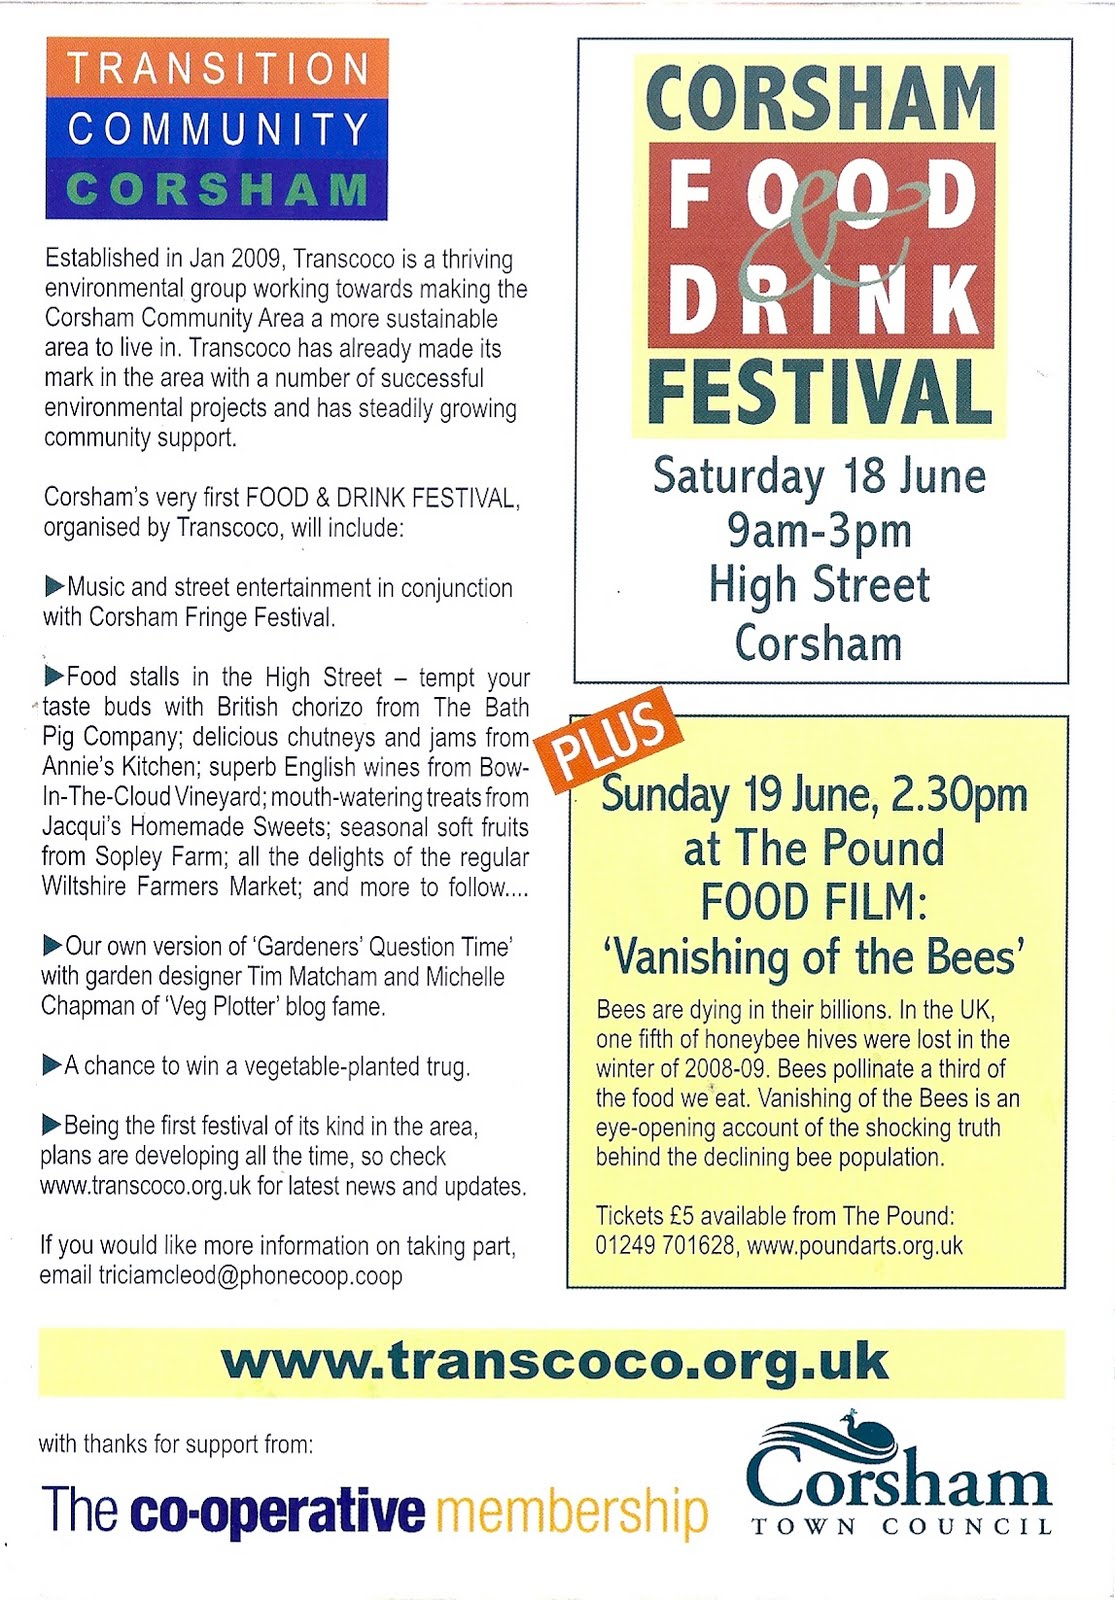 Veg Plotting: Corsham Food and Drink Festival